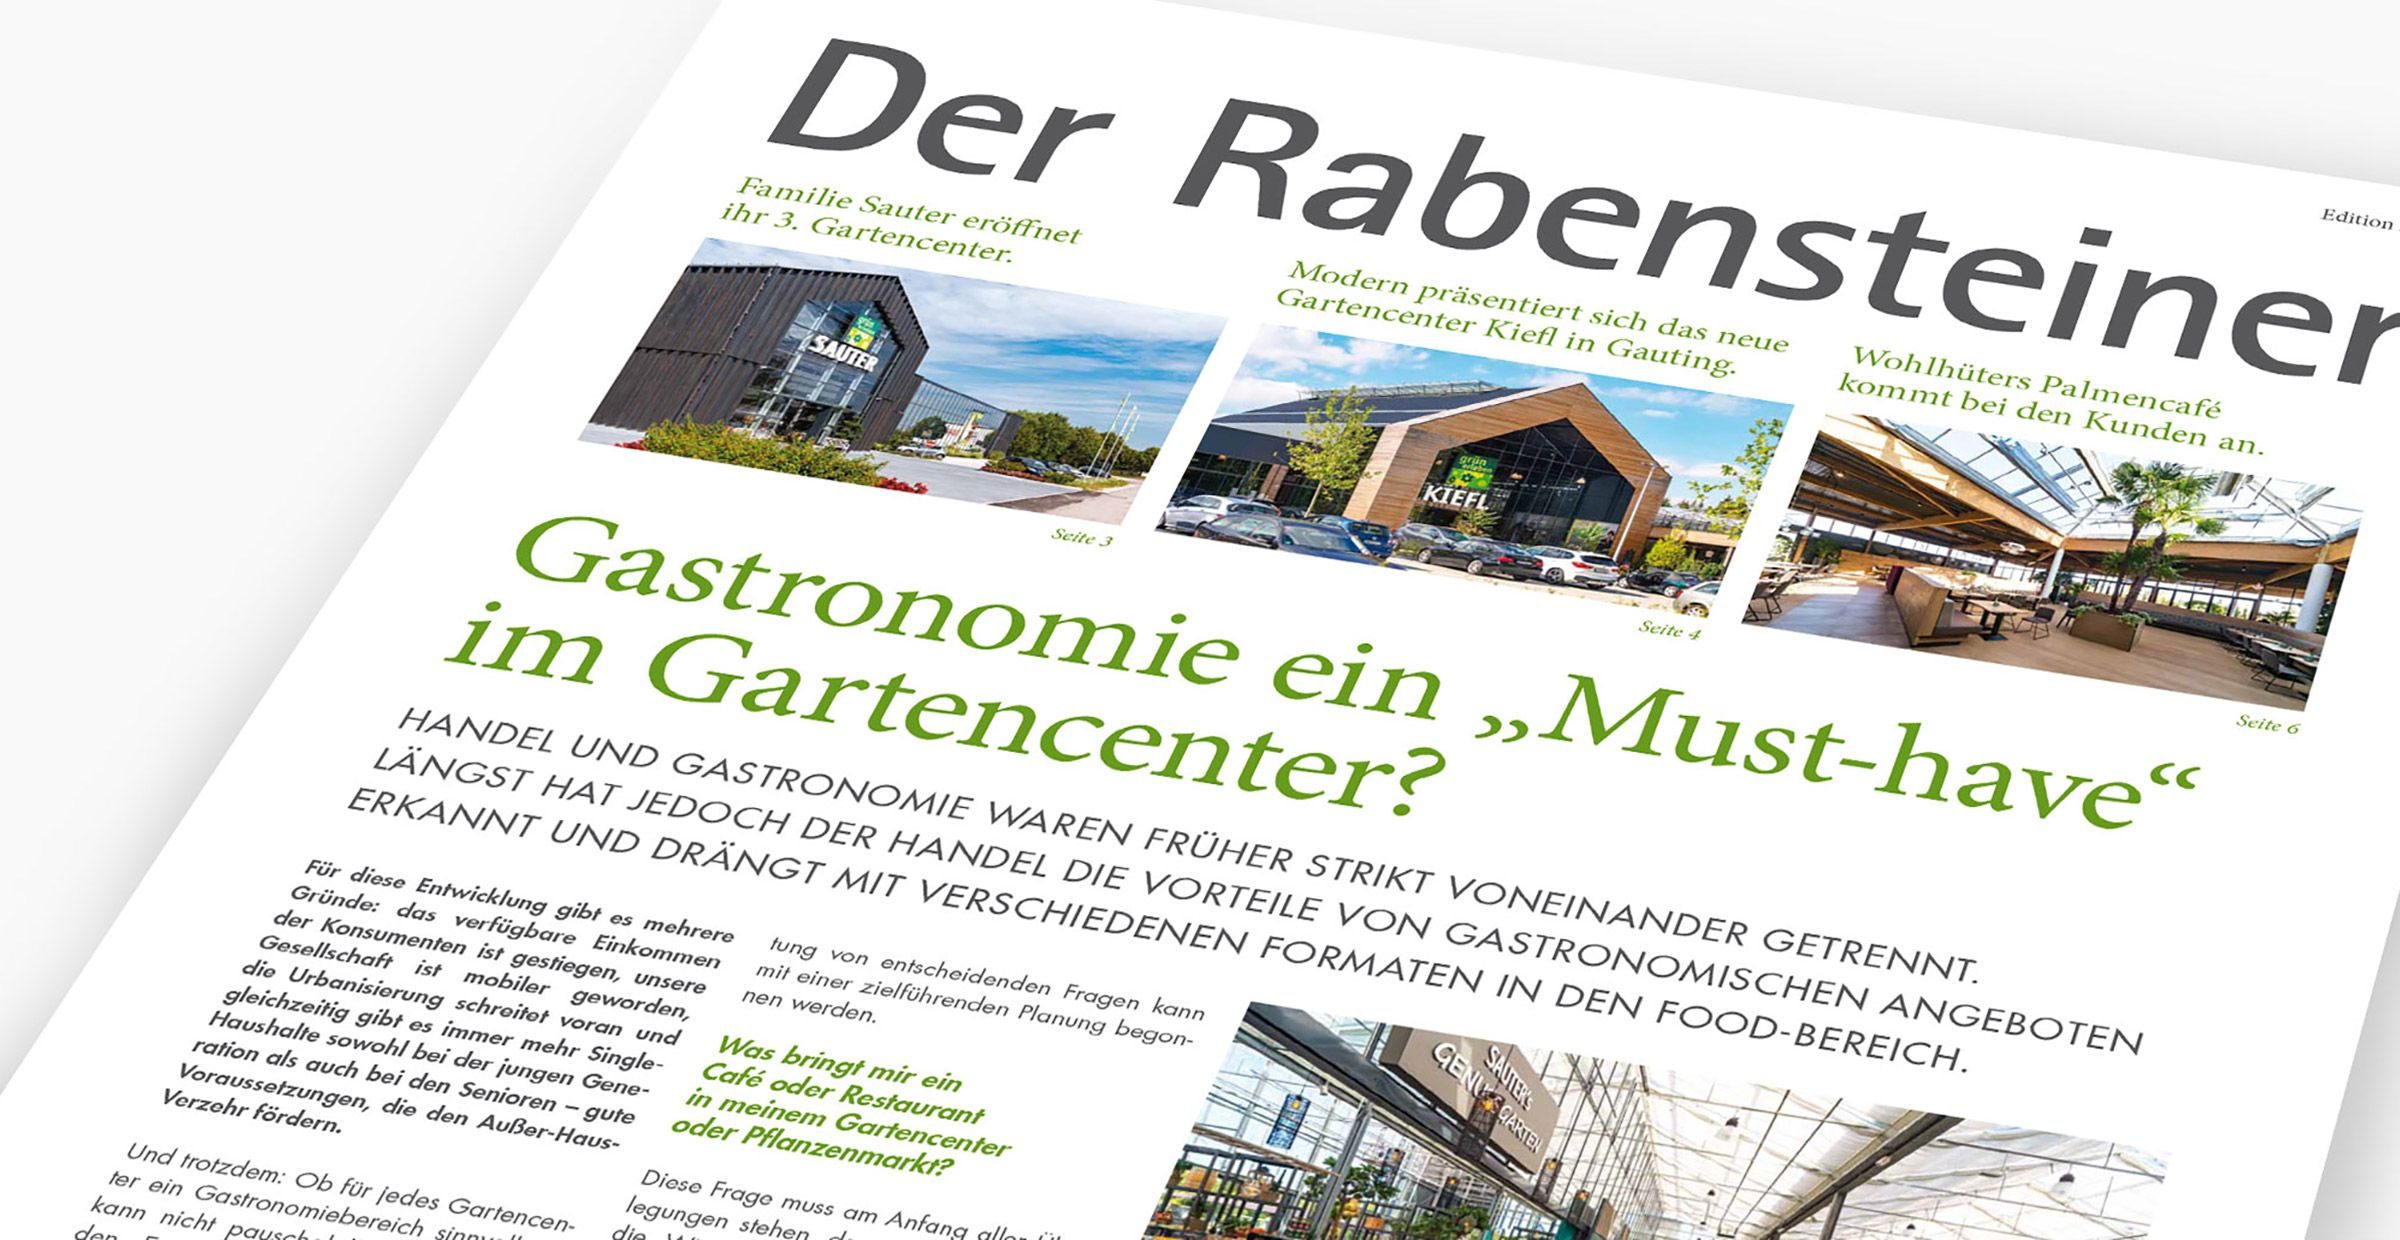 The Newsletter of Rabensteiner